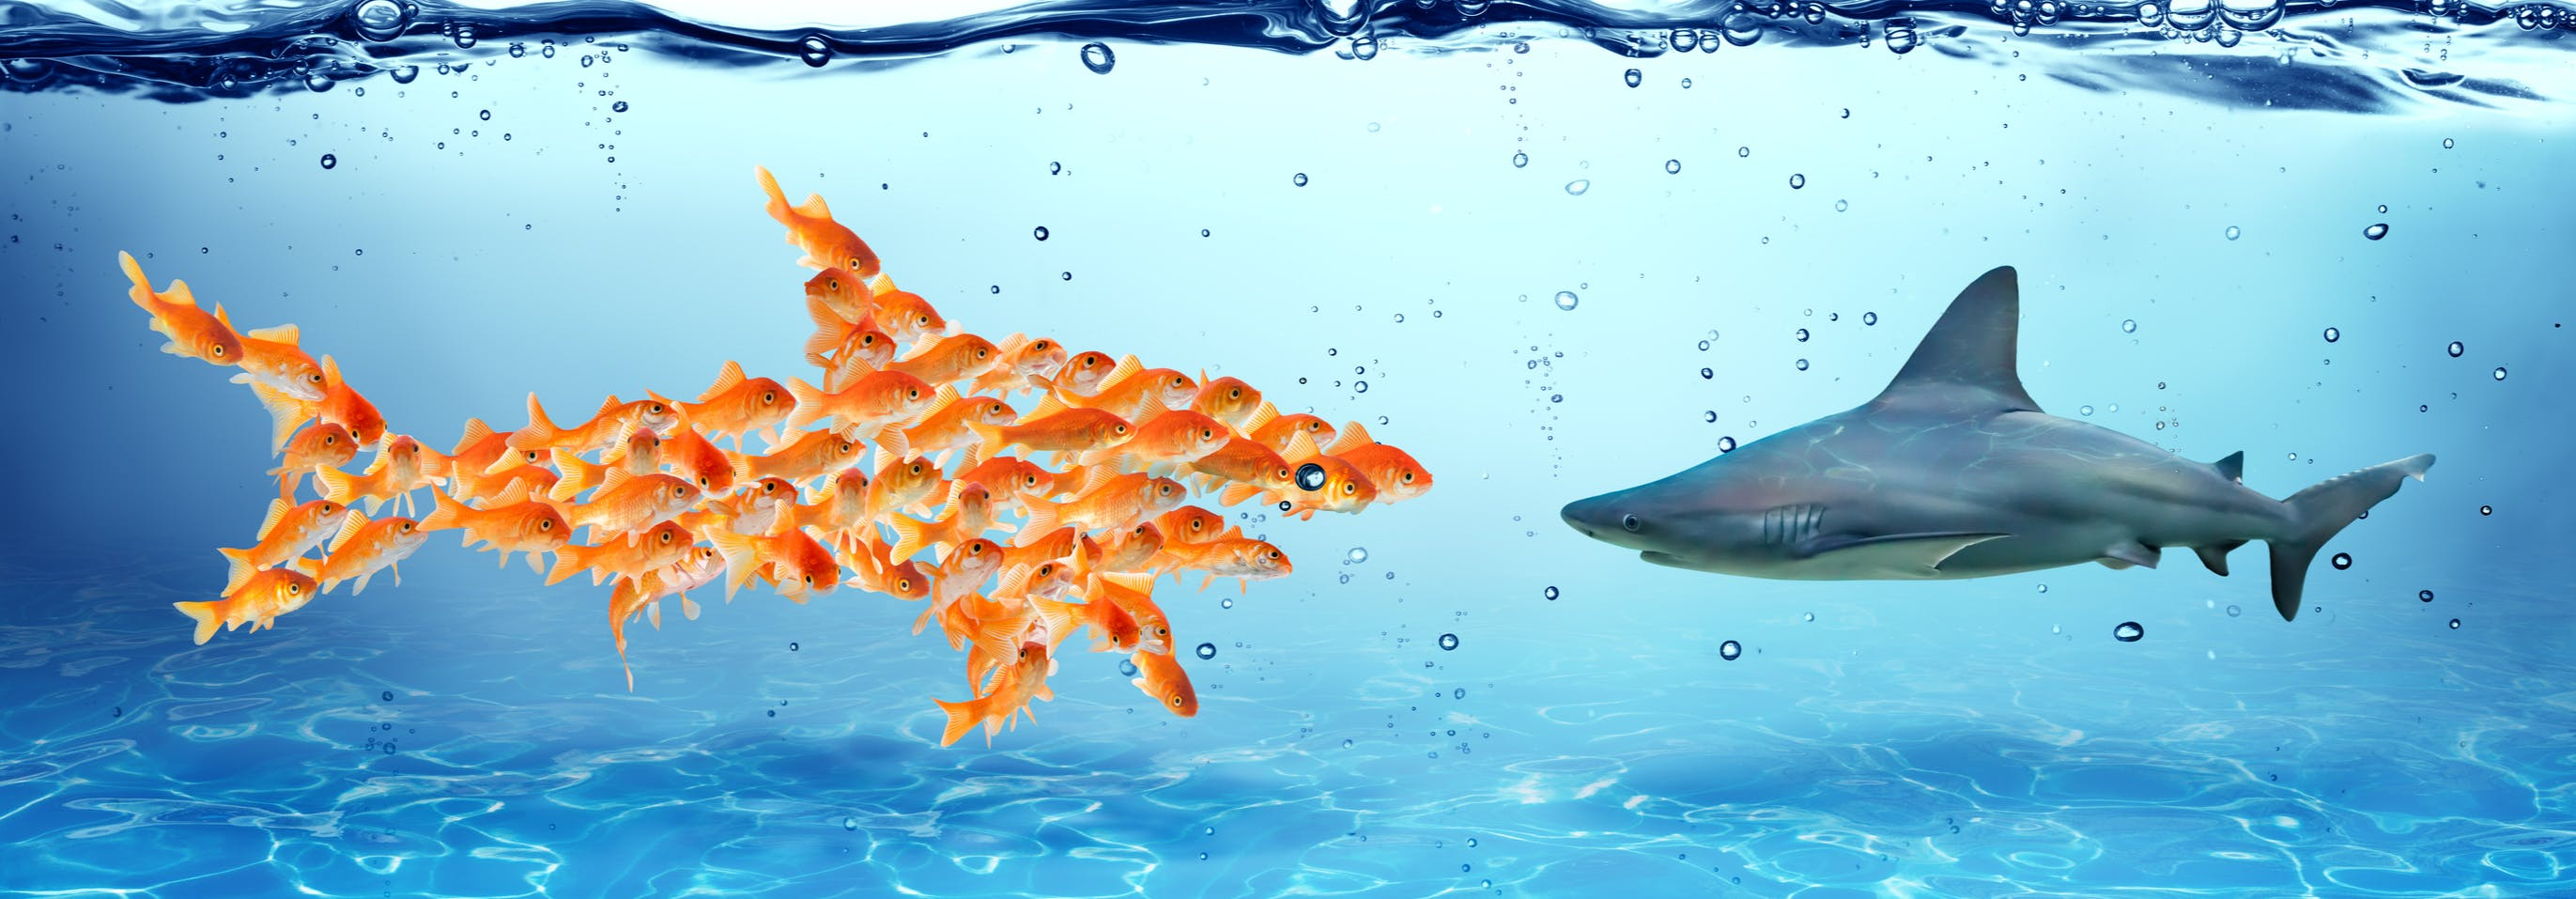 A school of gold fish comes together to confront the shark - we are stronger together!